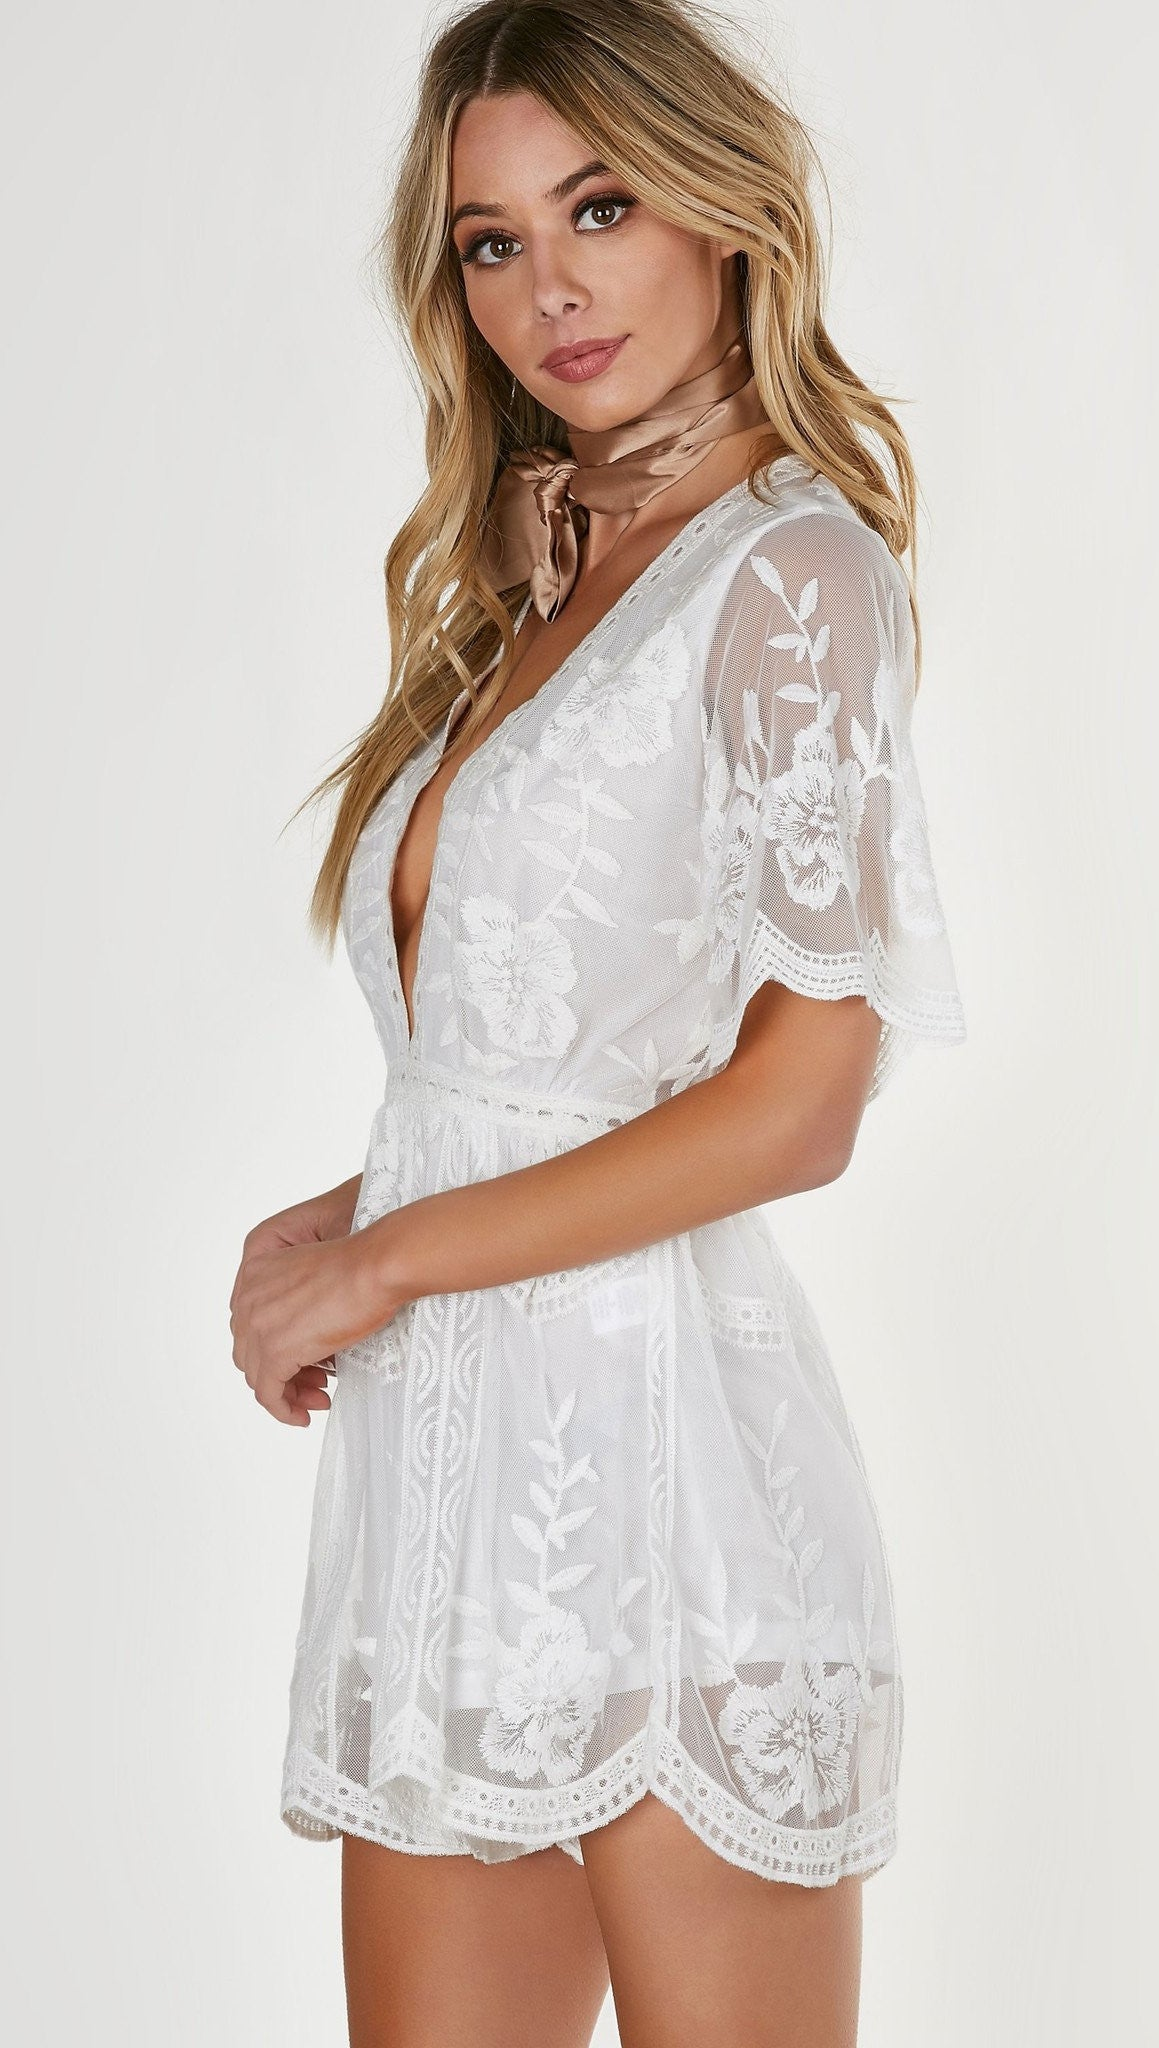 d8231a7269df ... Honey Punch. Antique Embroidered Romper White. Antique Embroidered Romper  White. Antique Embroidered Romper White